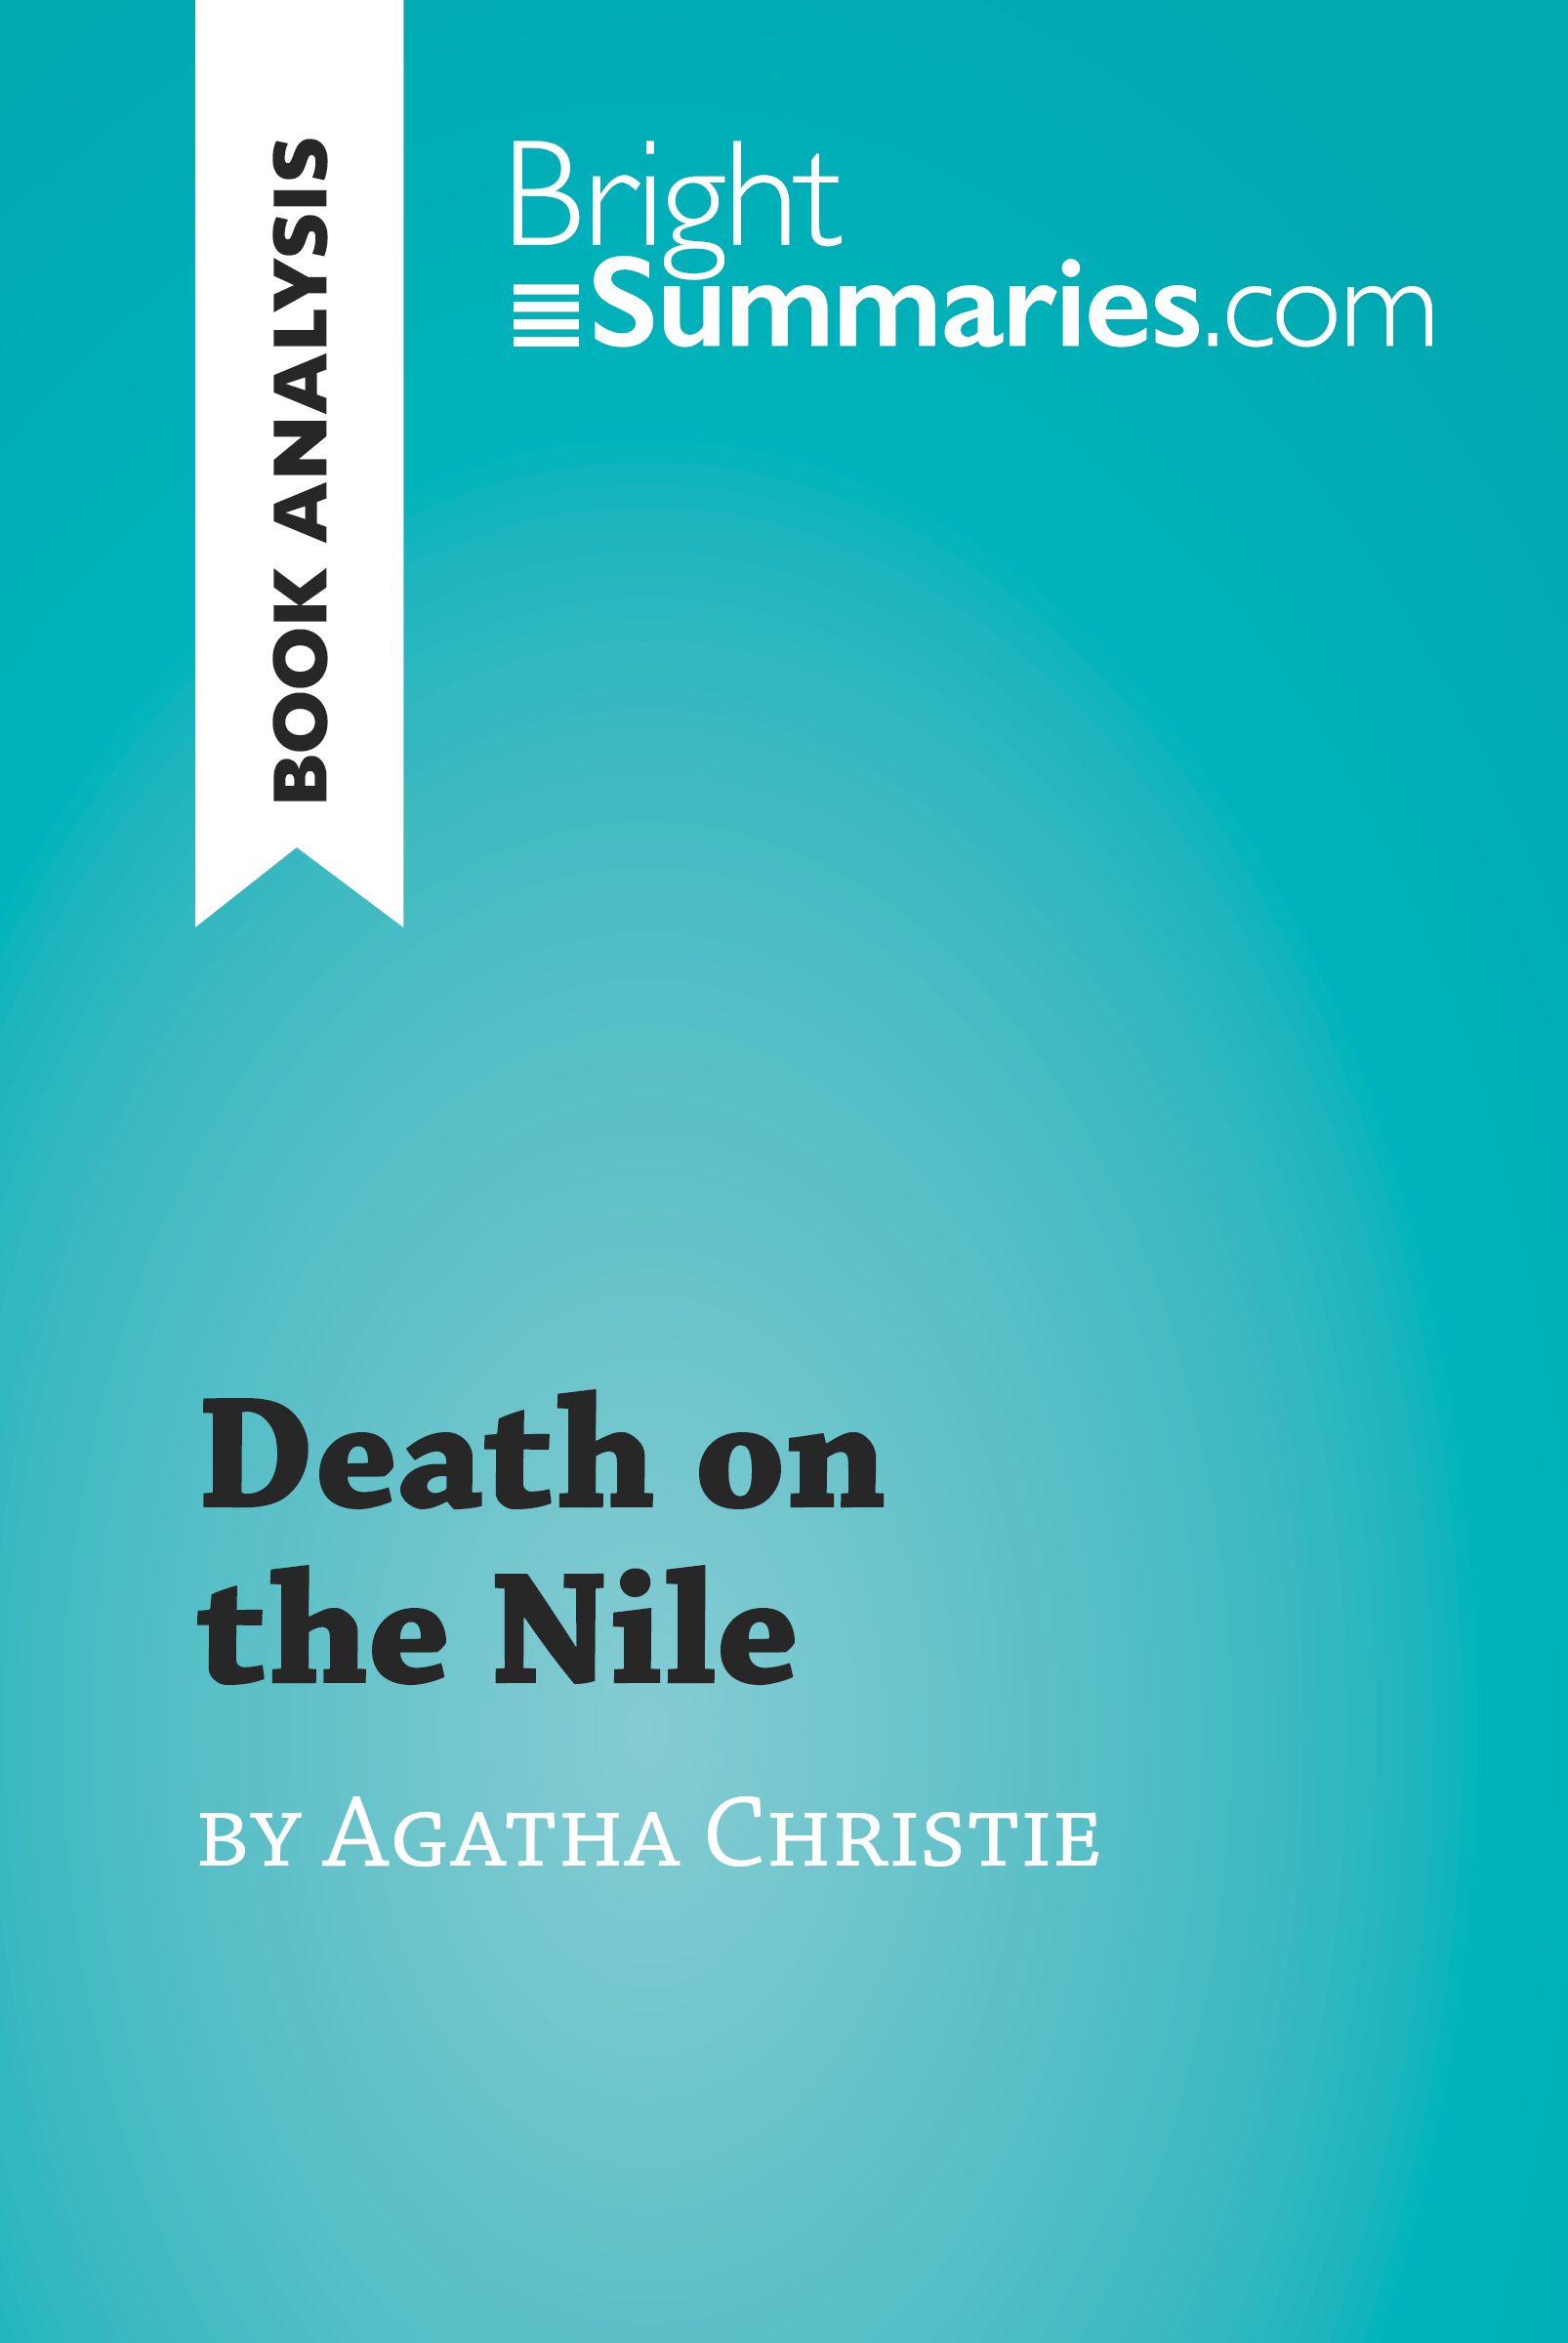 Death on the Nile by Agatha Christie (Book Analysis)